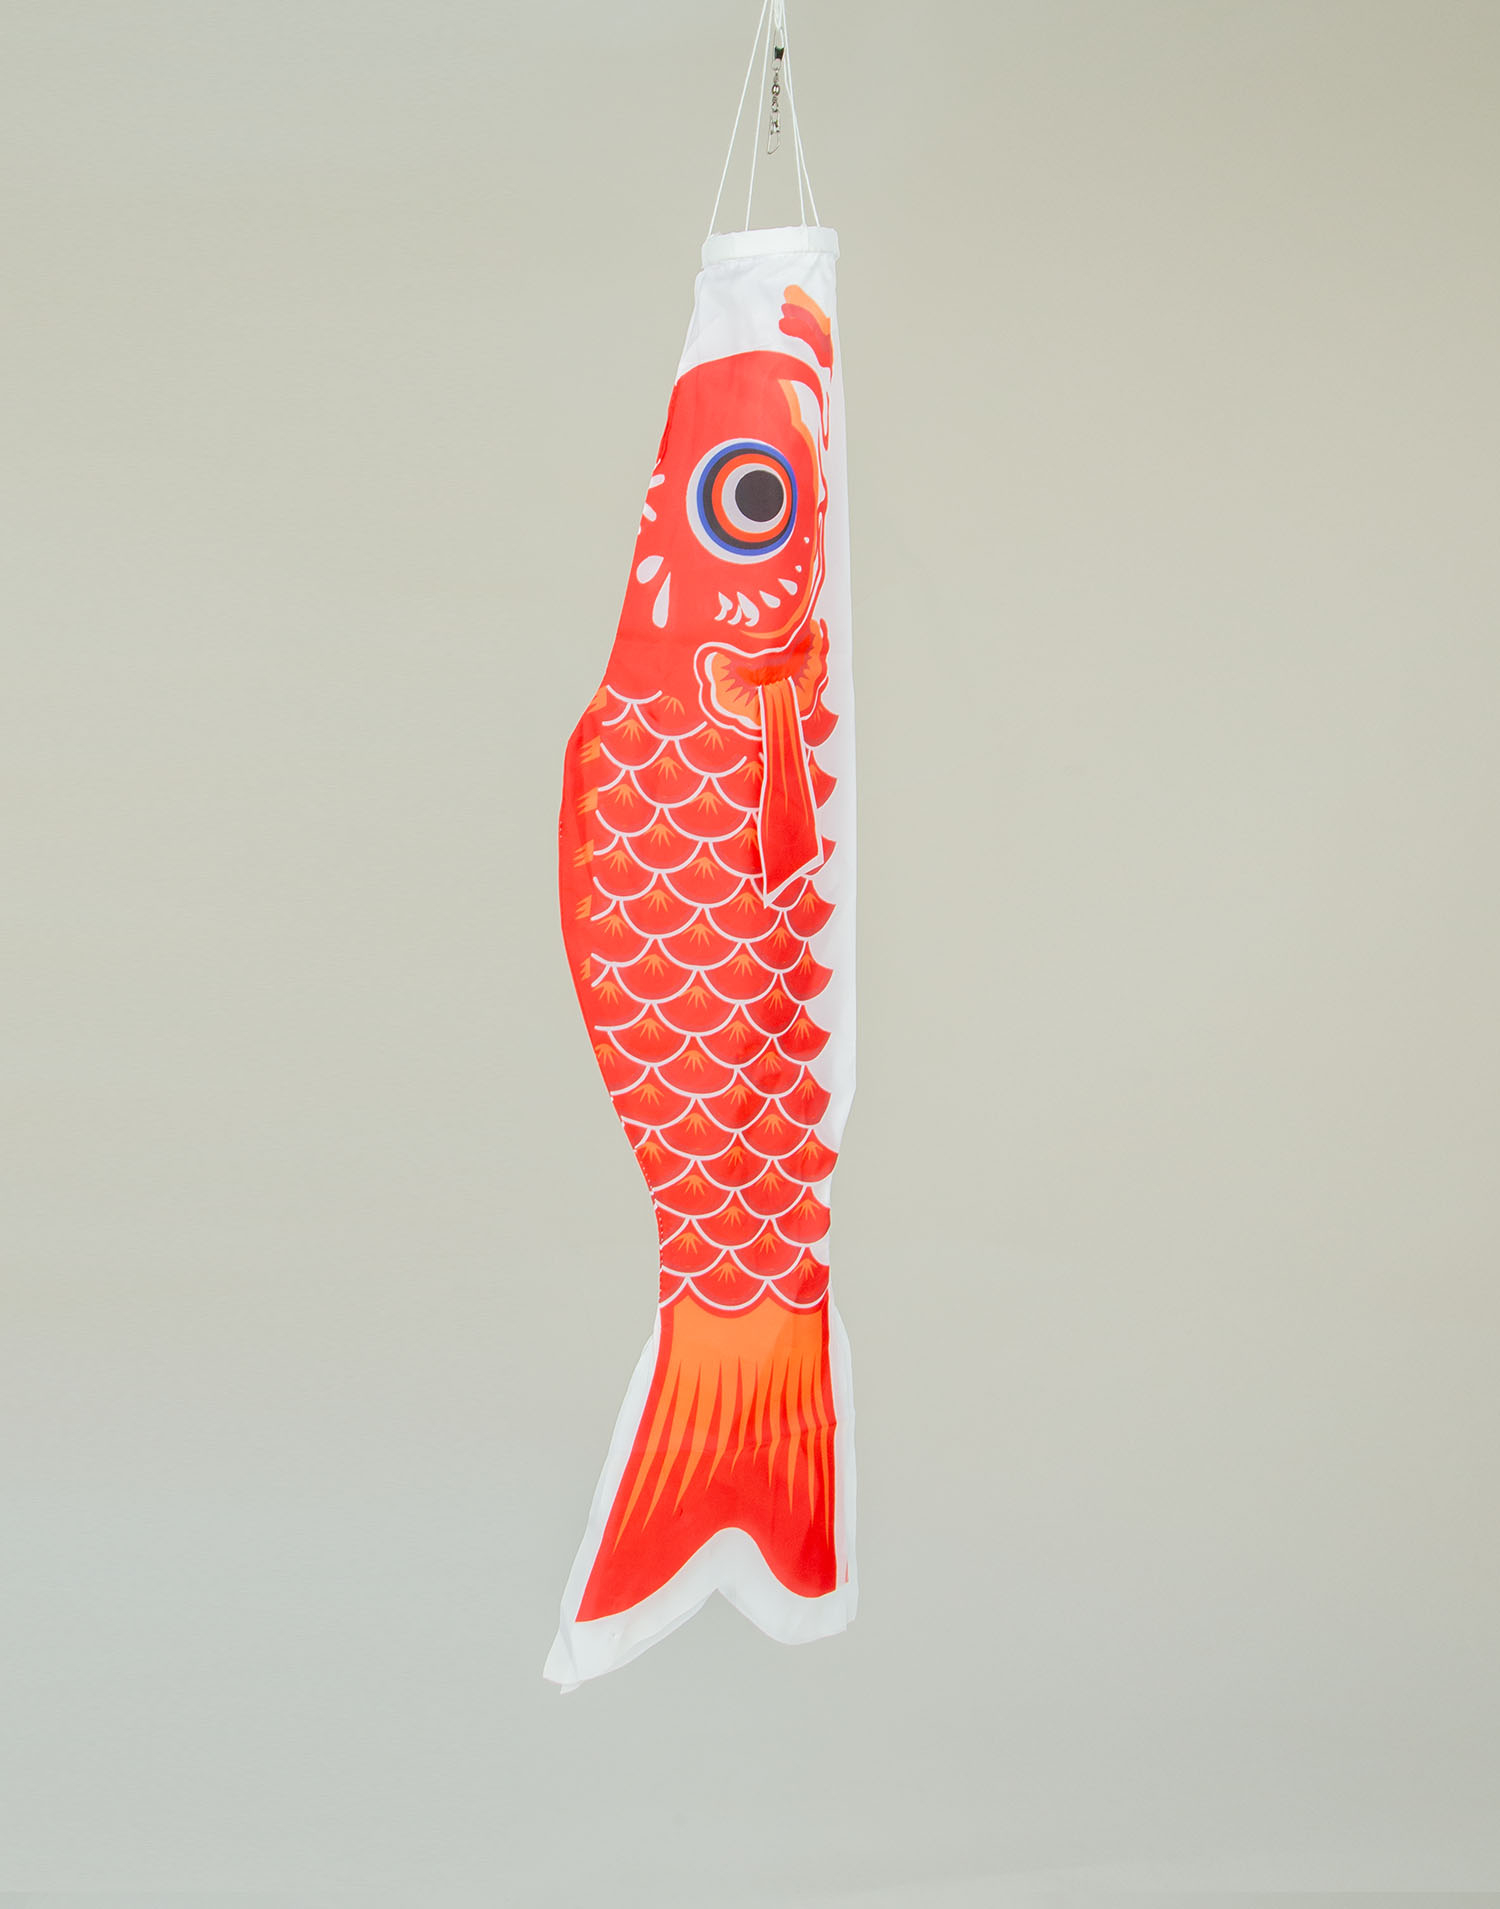 Medium size carp decorative banderole